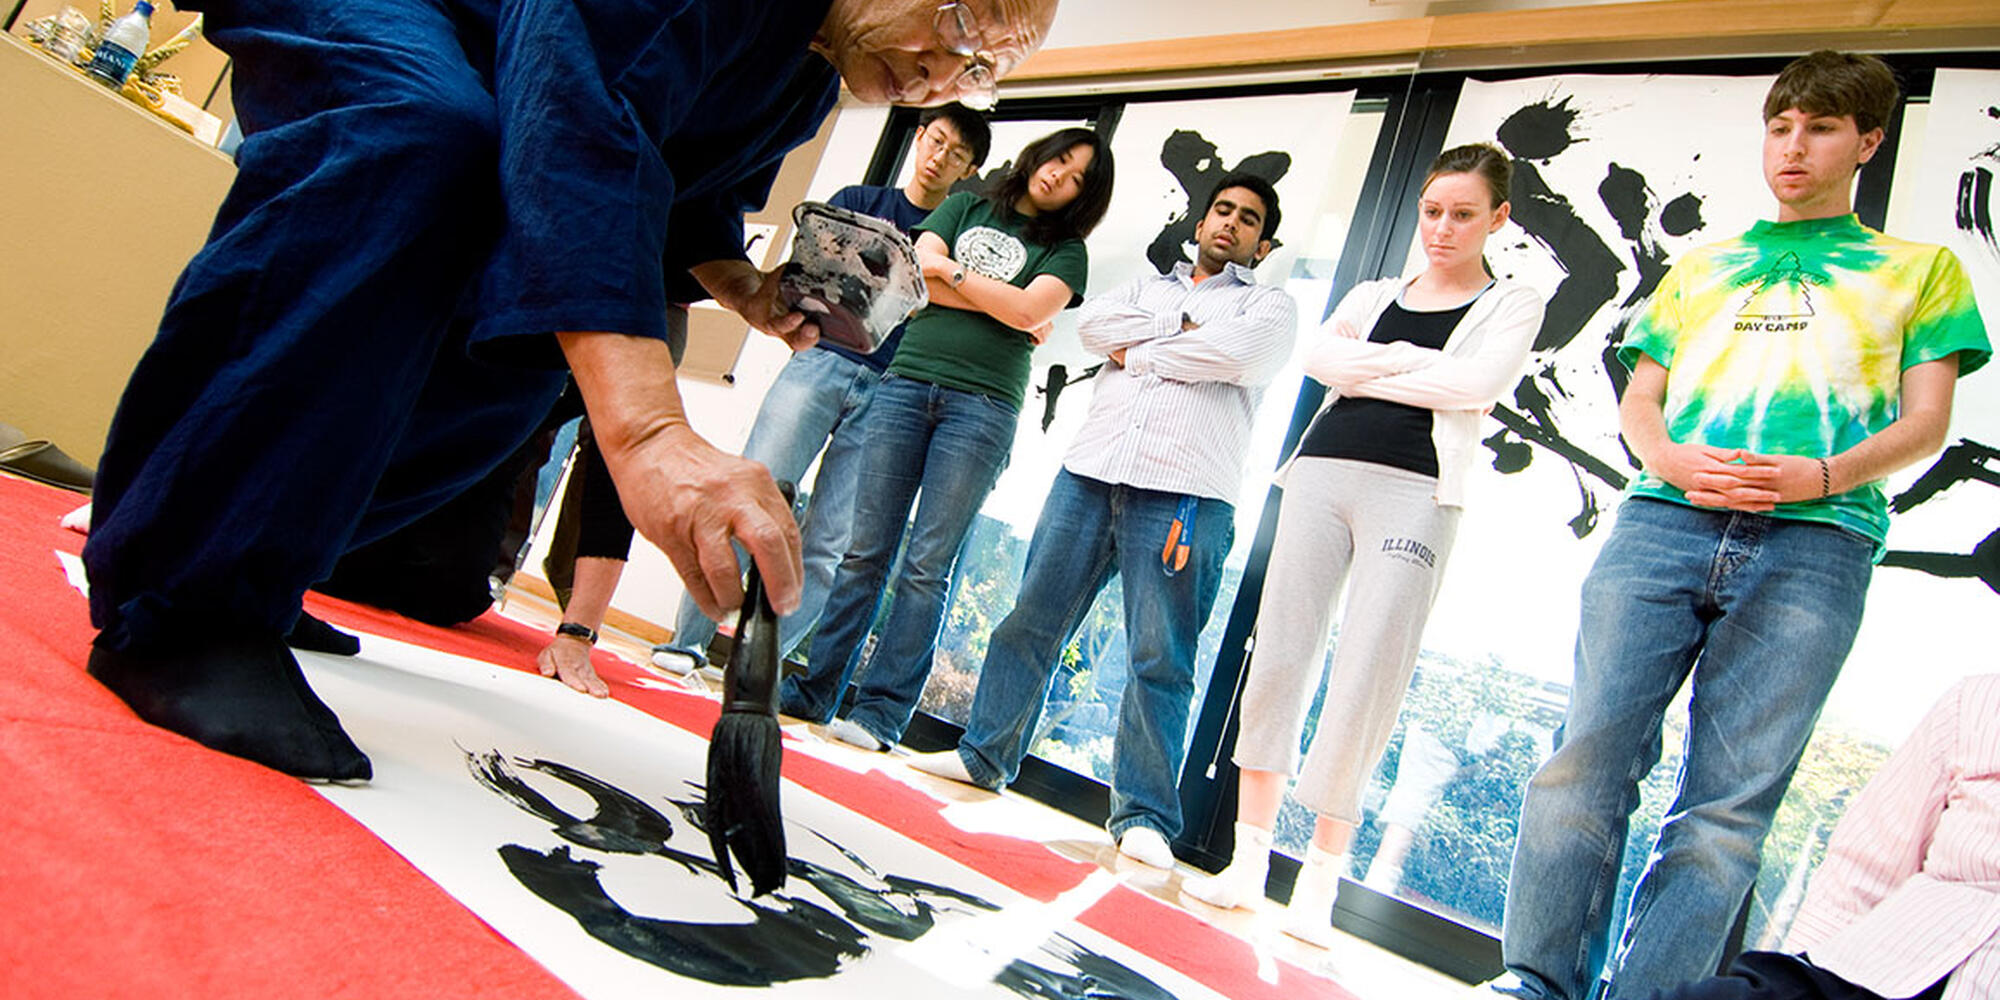 Students watch calligraphy painter